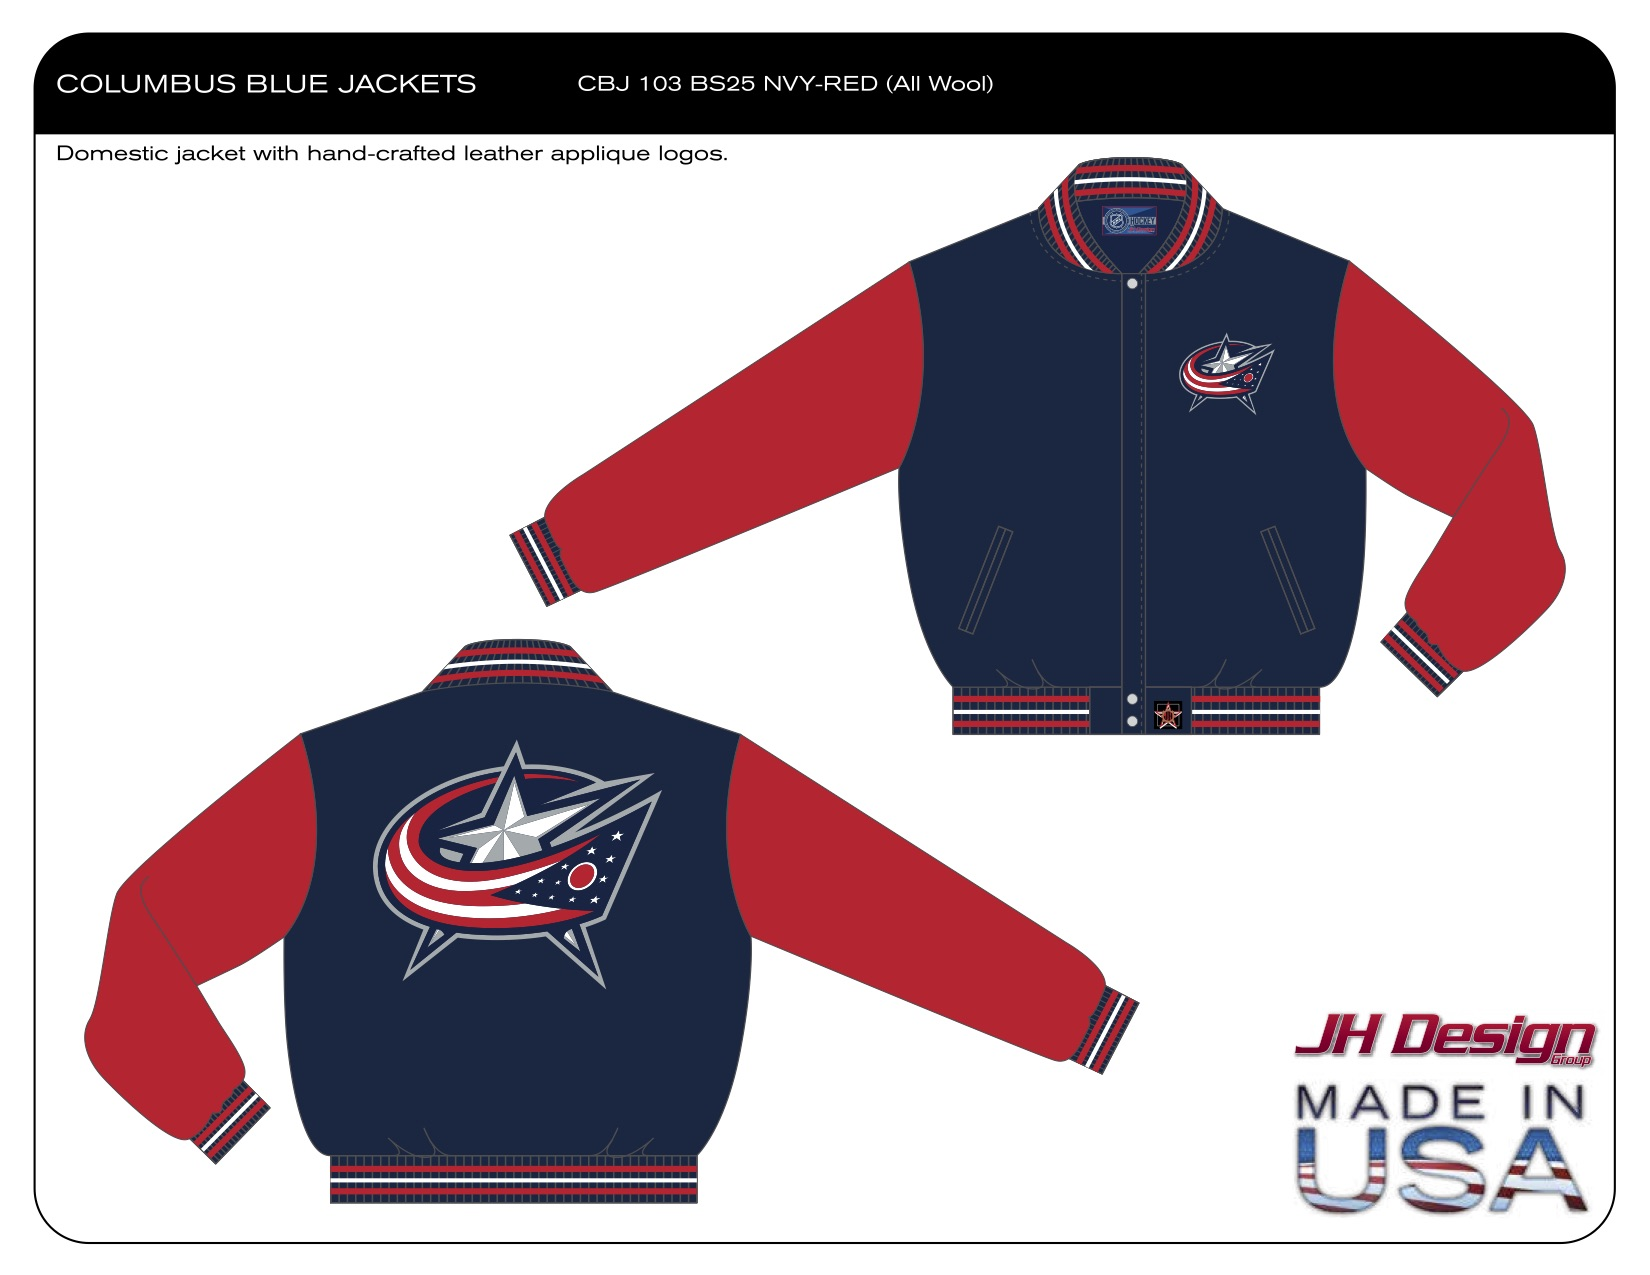 CBJ 103 BS25 NVY-RED